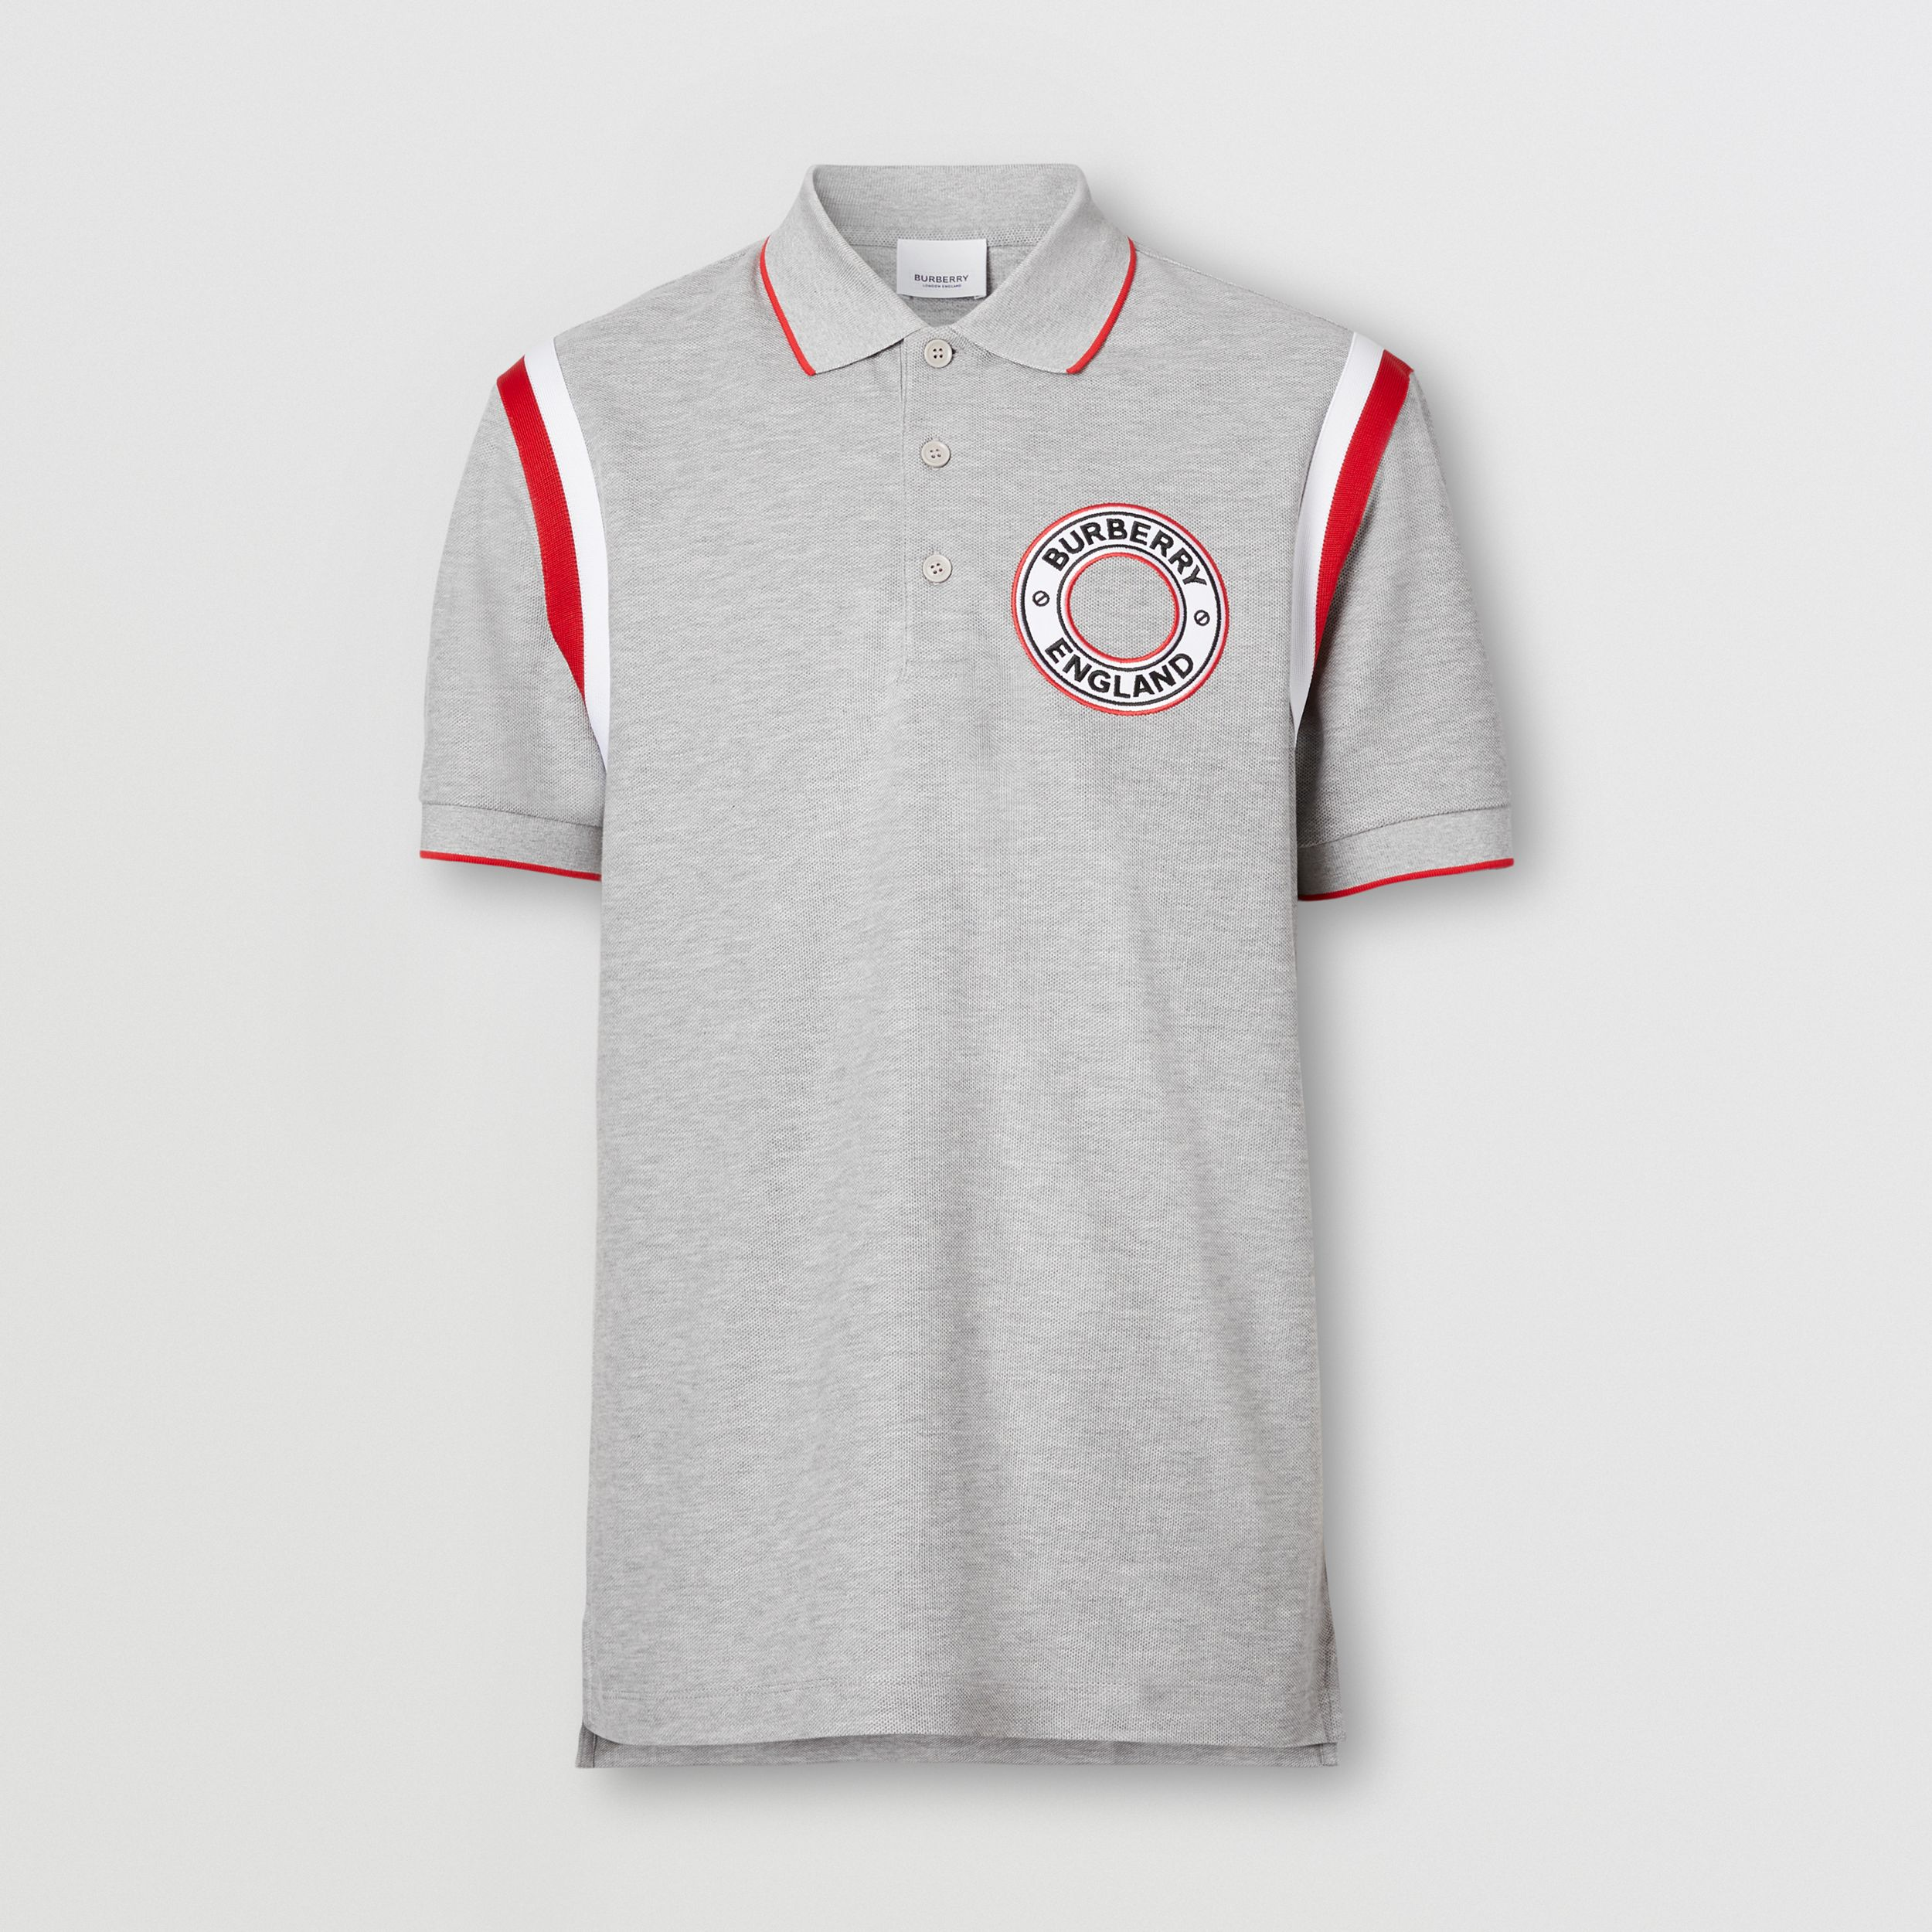 Logo Graphic Appliqué Cotton Piqué Polo Shirt in Pale Grey Melange - Men | Burberry - 4